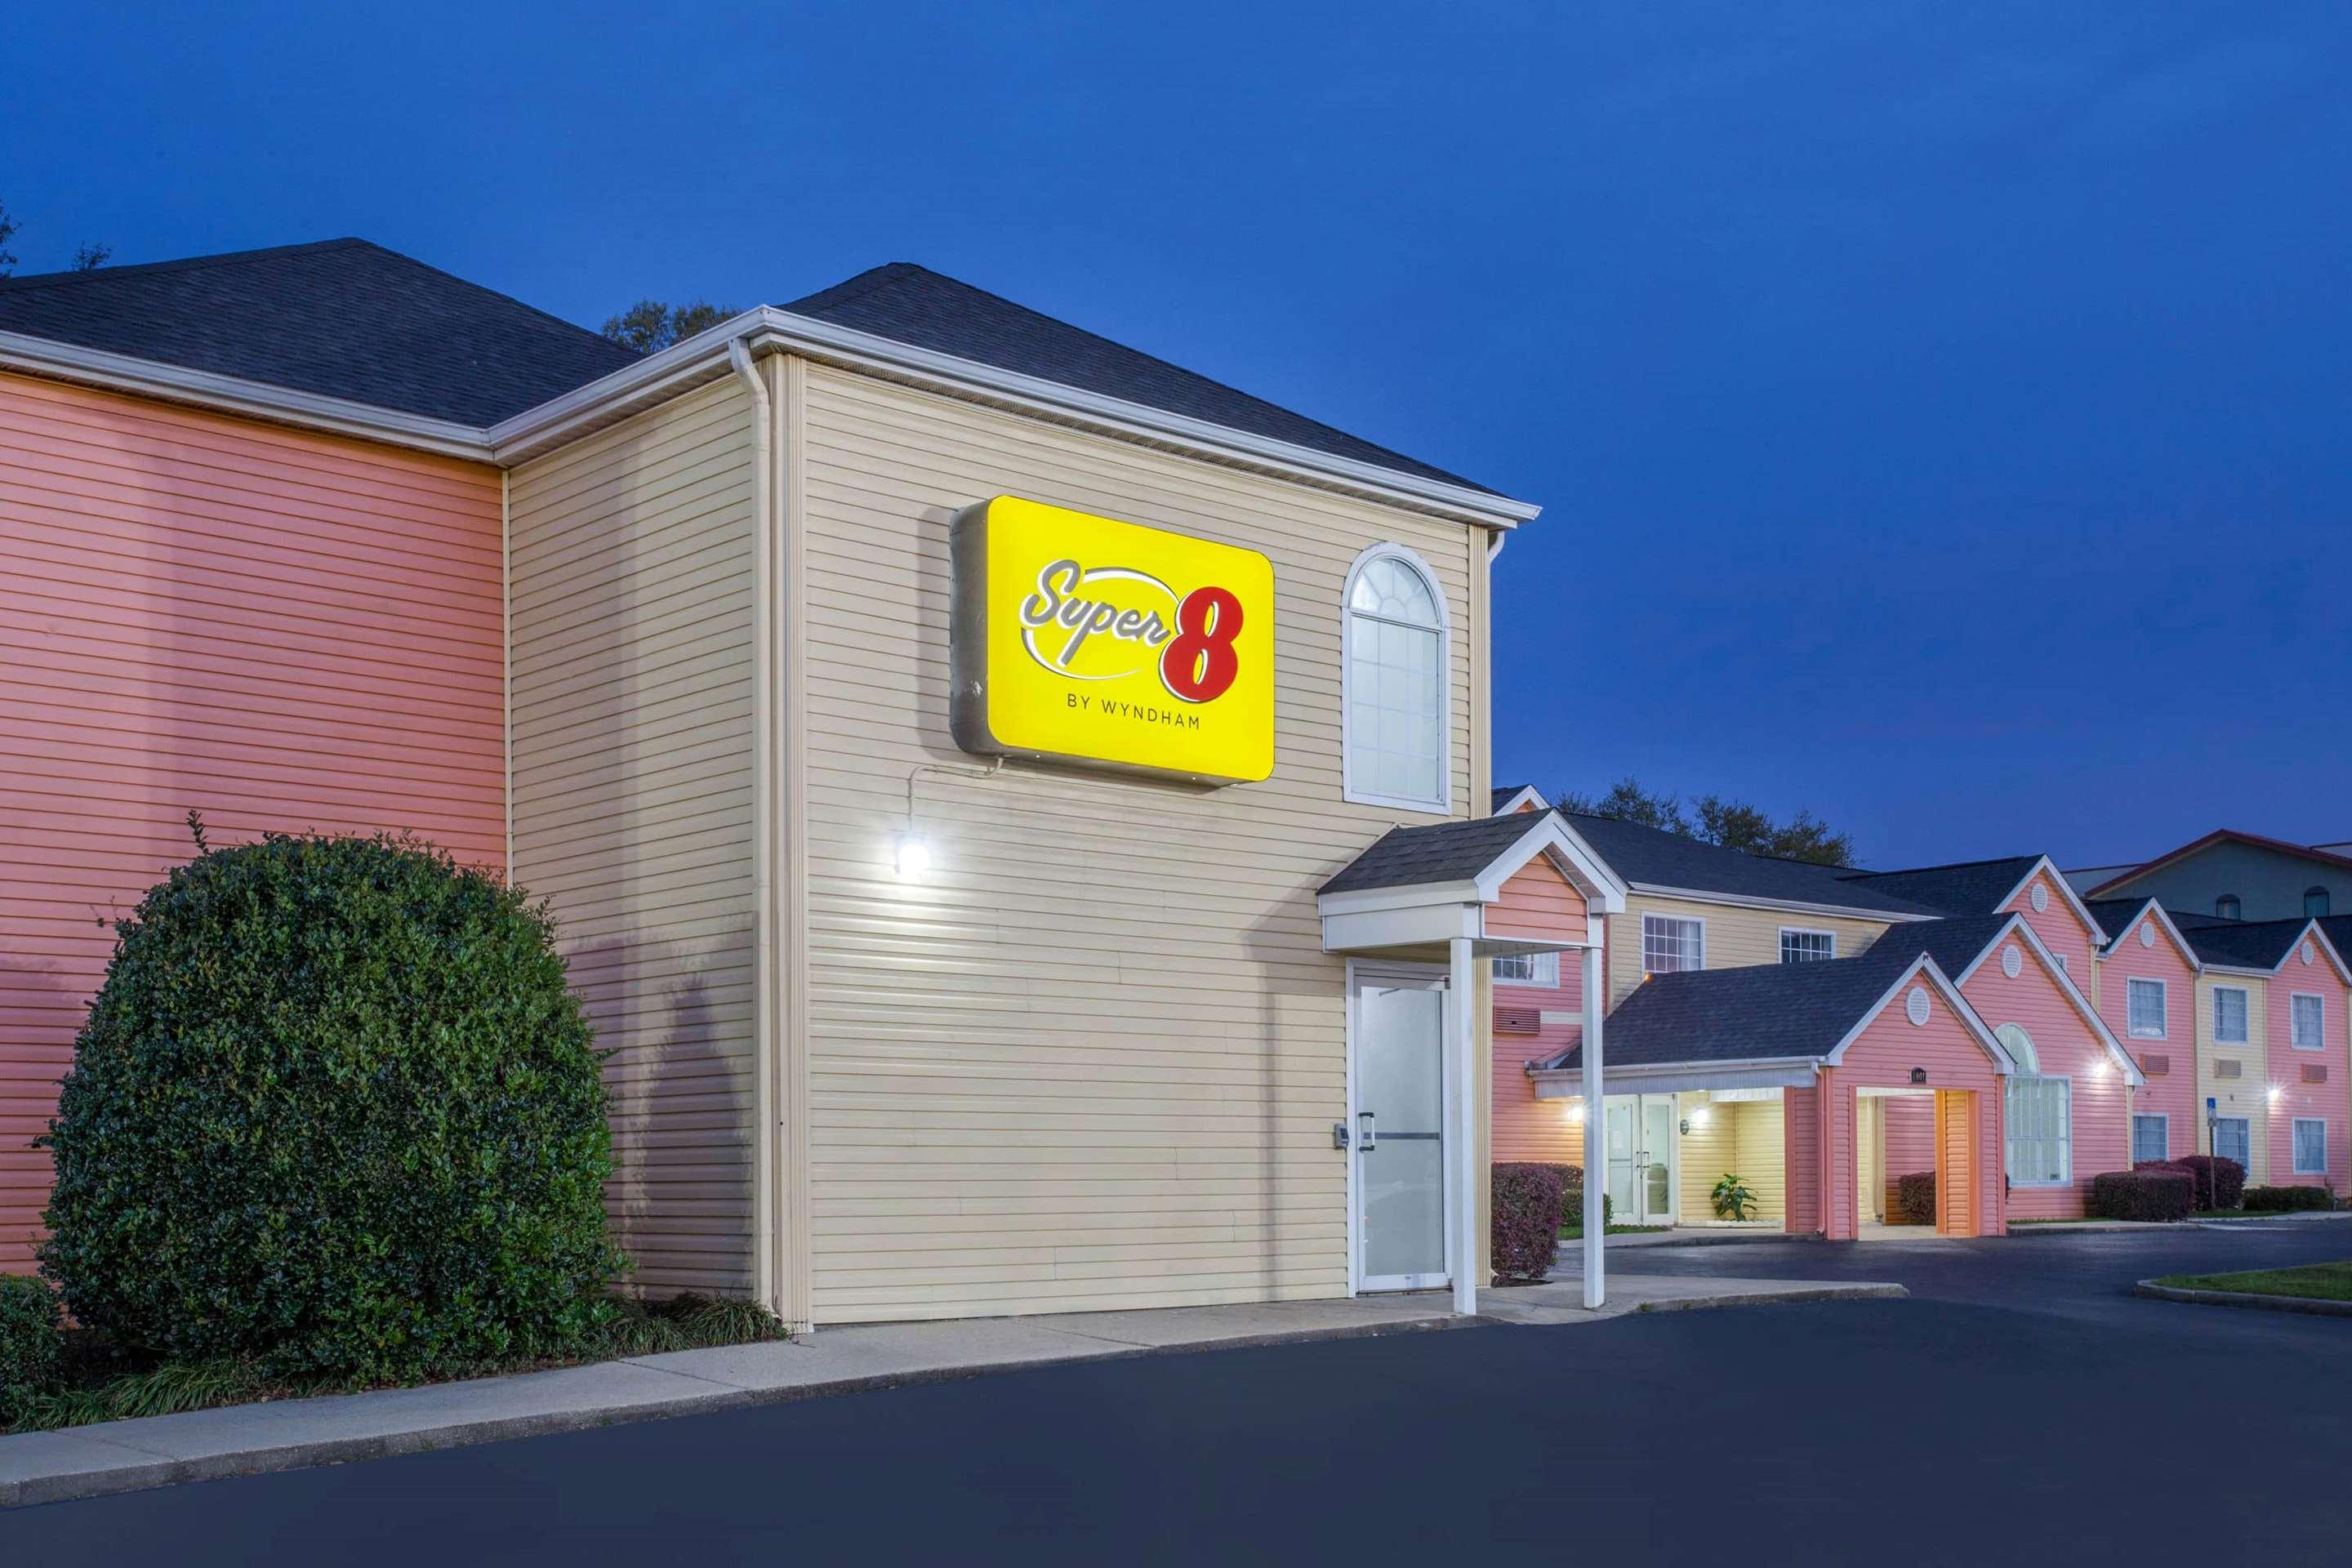 Super 8 by Wyndham Pensacola